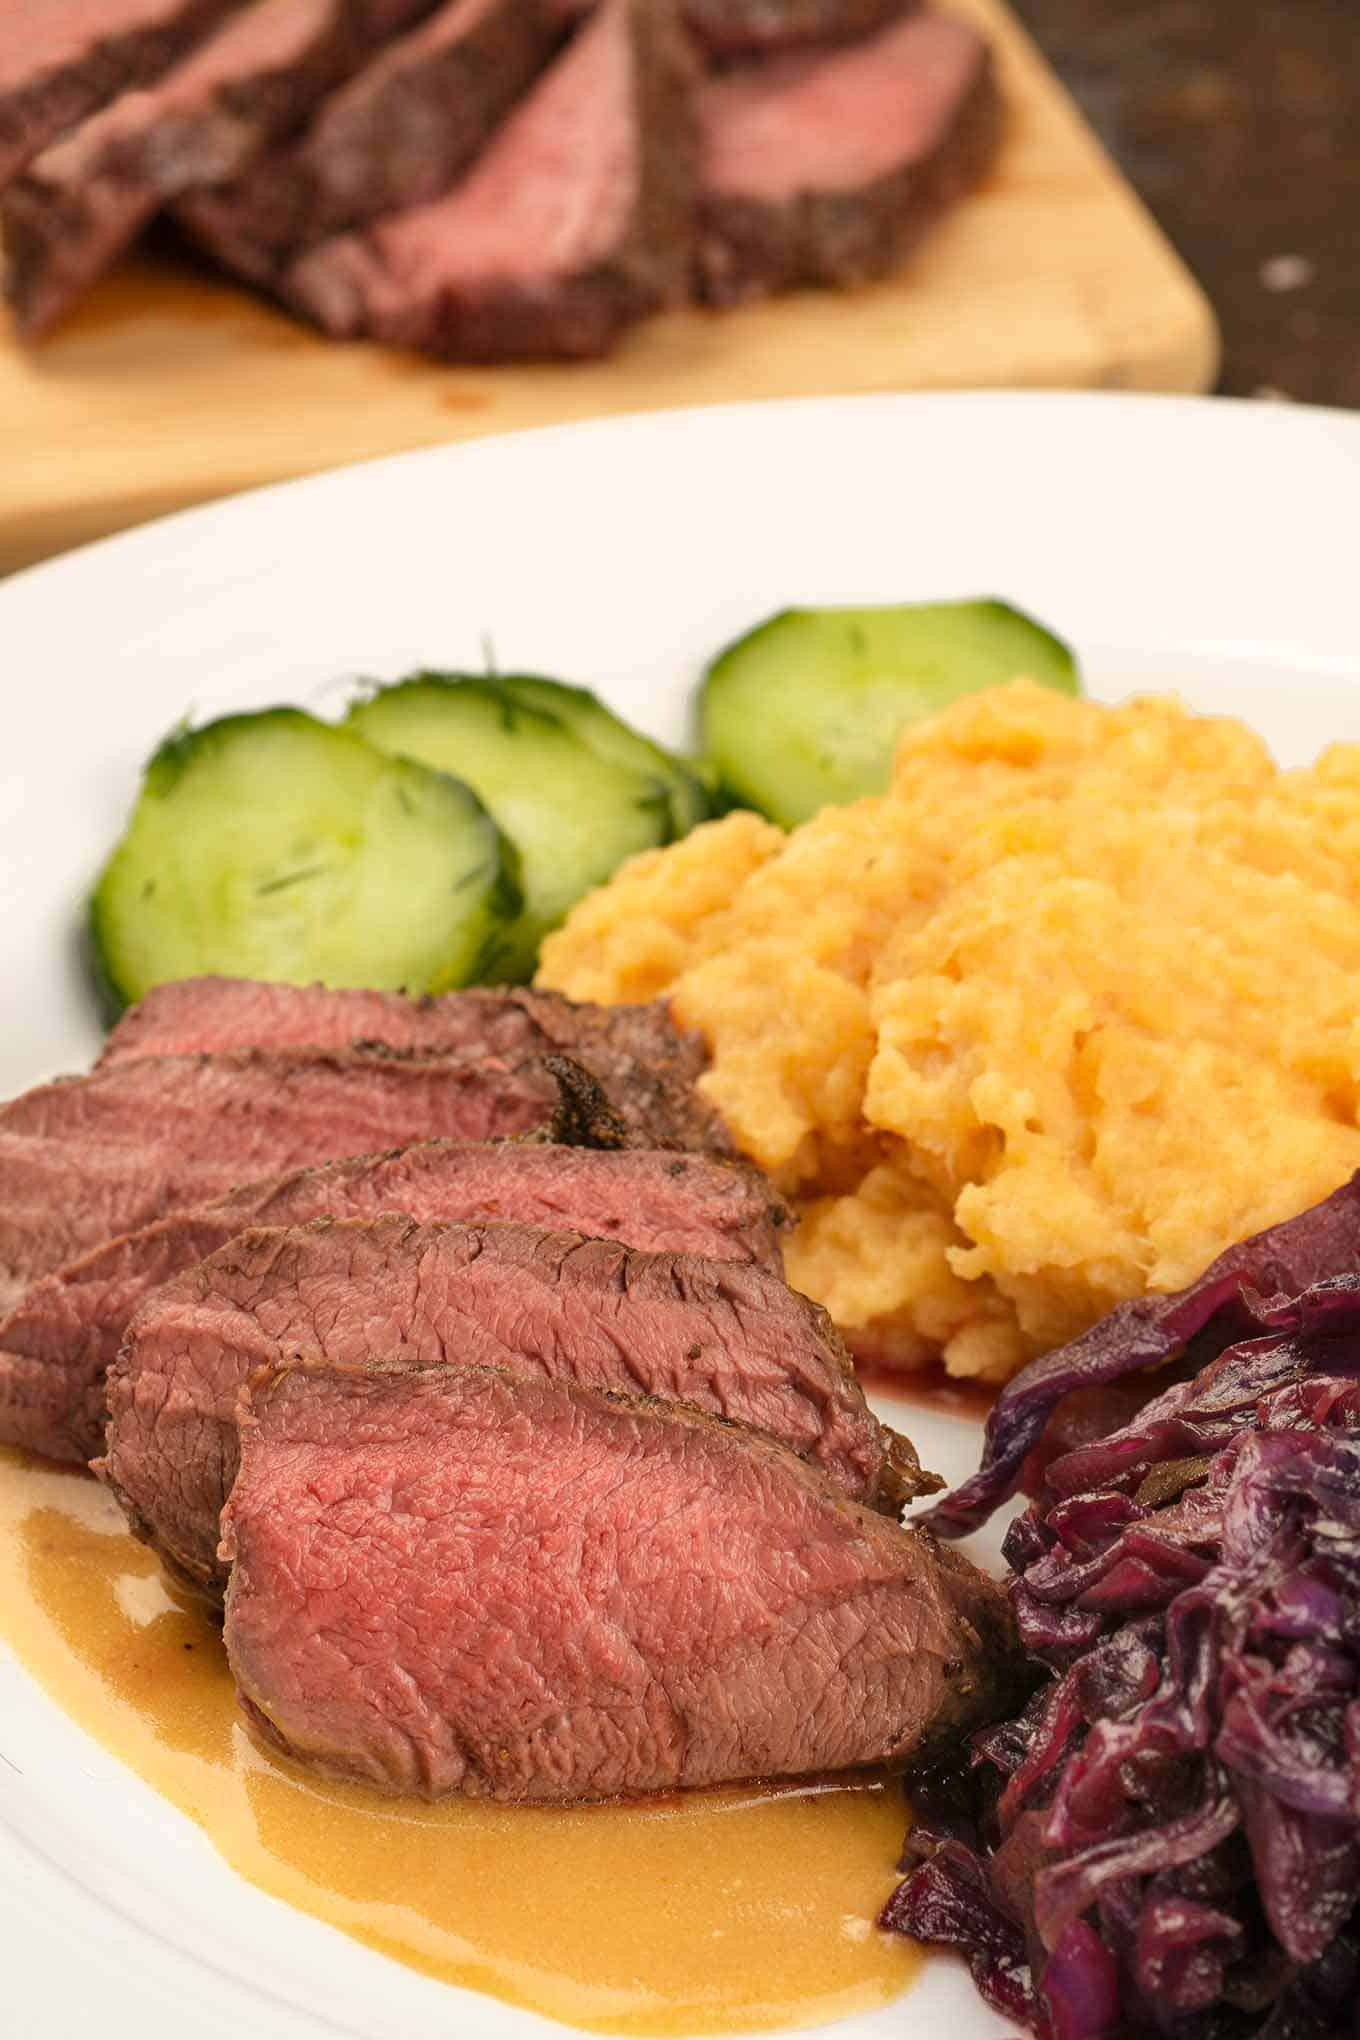 Sliced venison tenderloin on a plate with side dishes and sauce